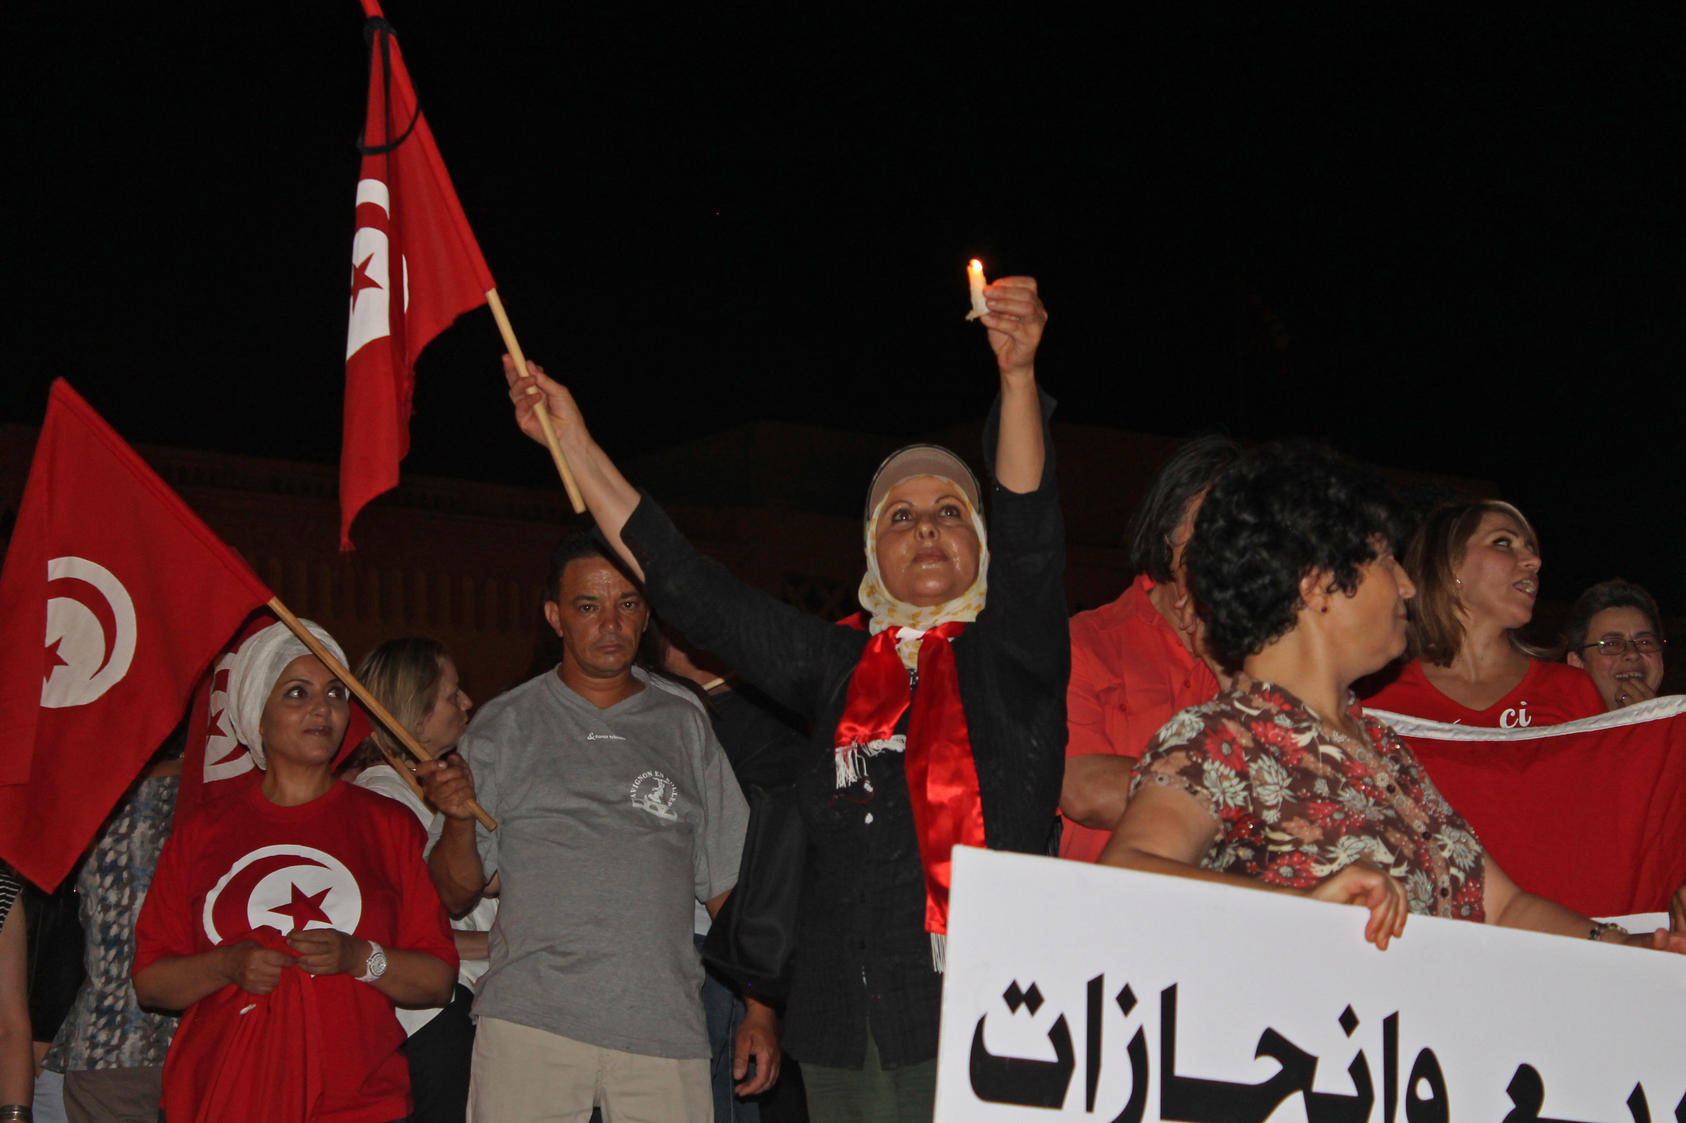 Activists organize a candlelight protest in Tunis